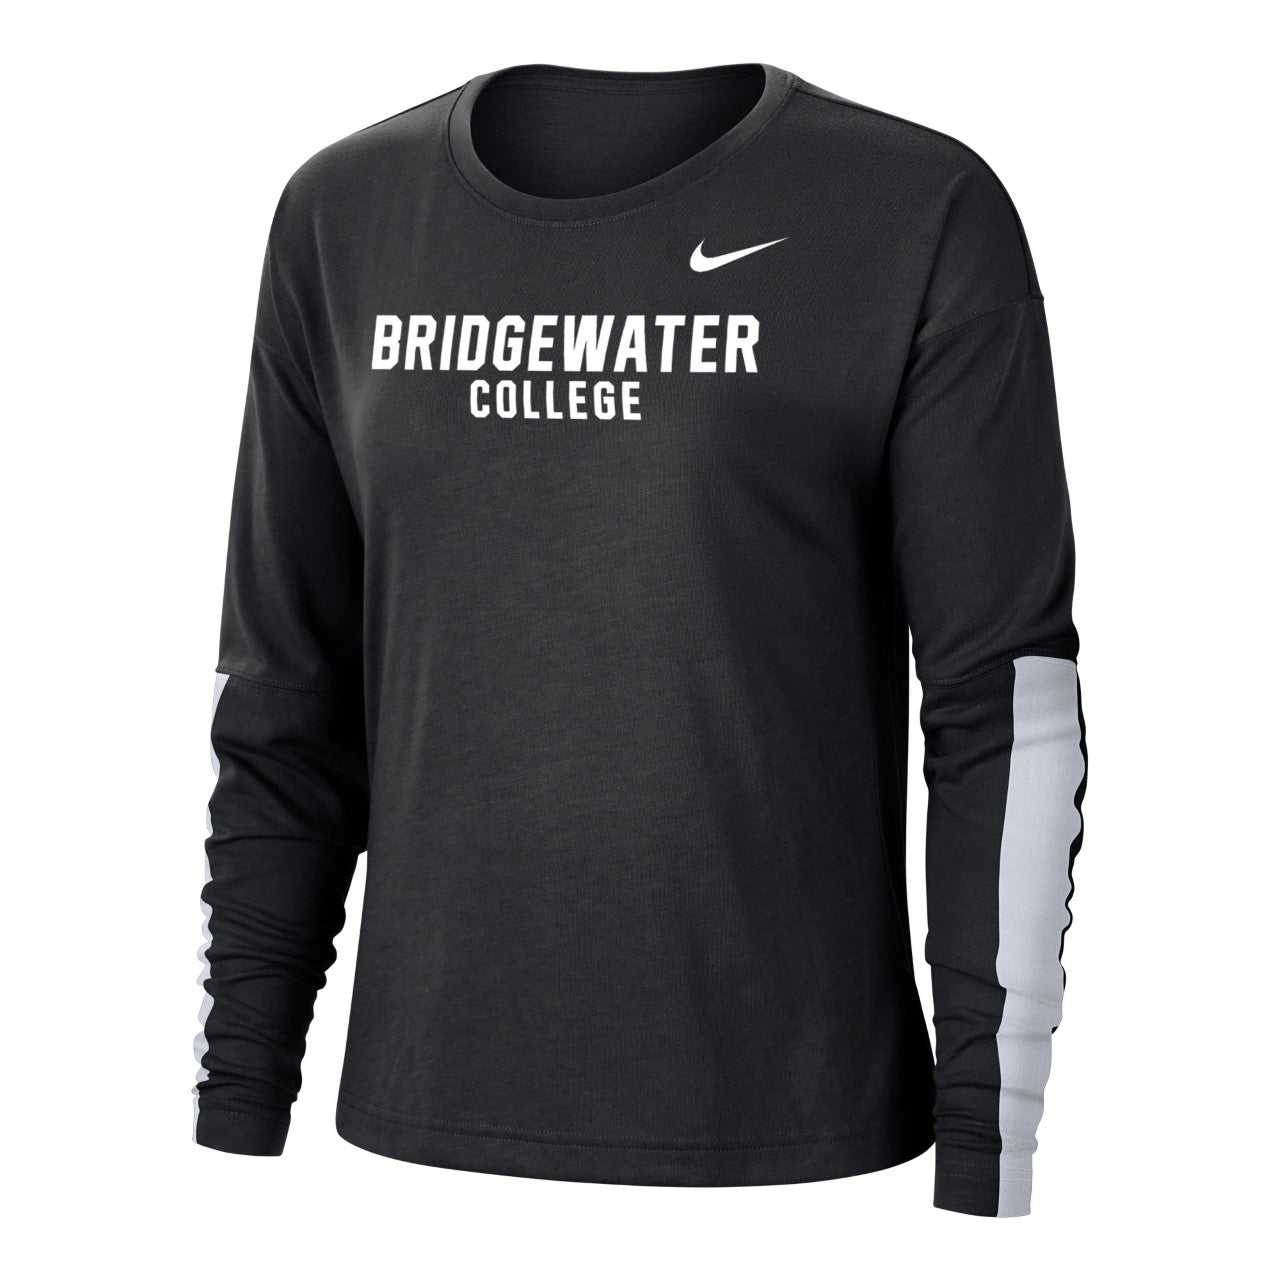 Nike Bridgewater College Womens Breathe Long Sleeve Black Tee